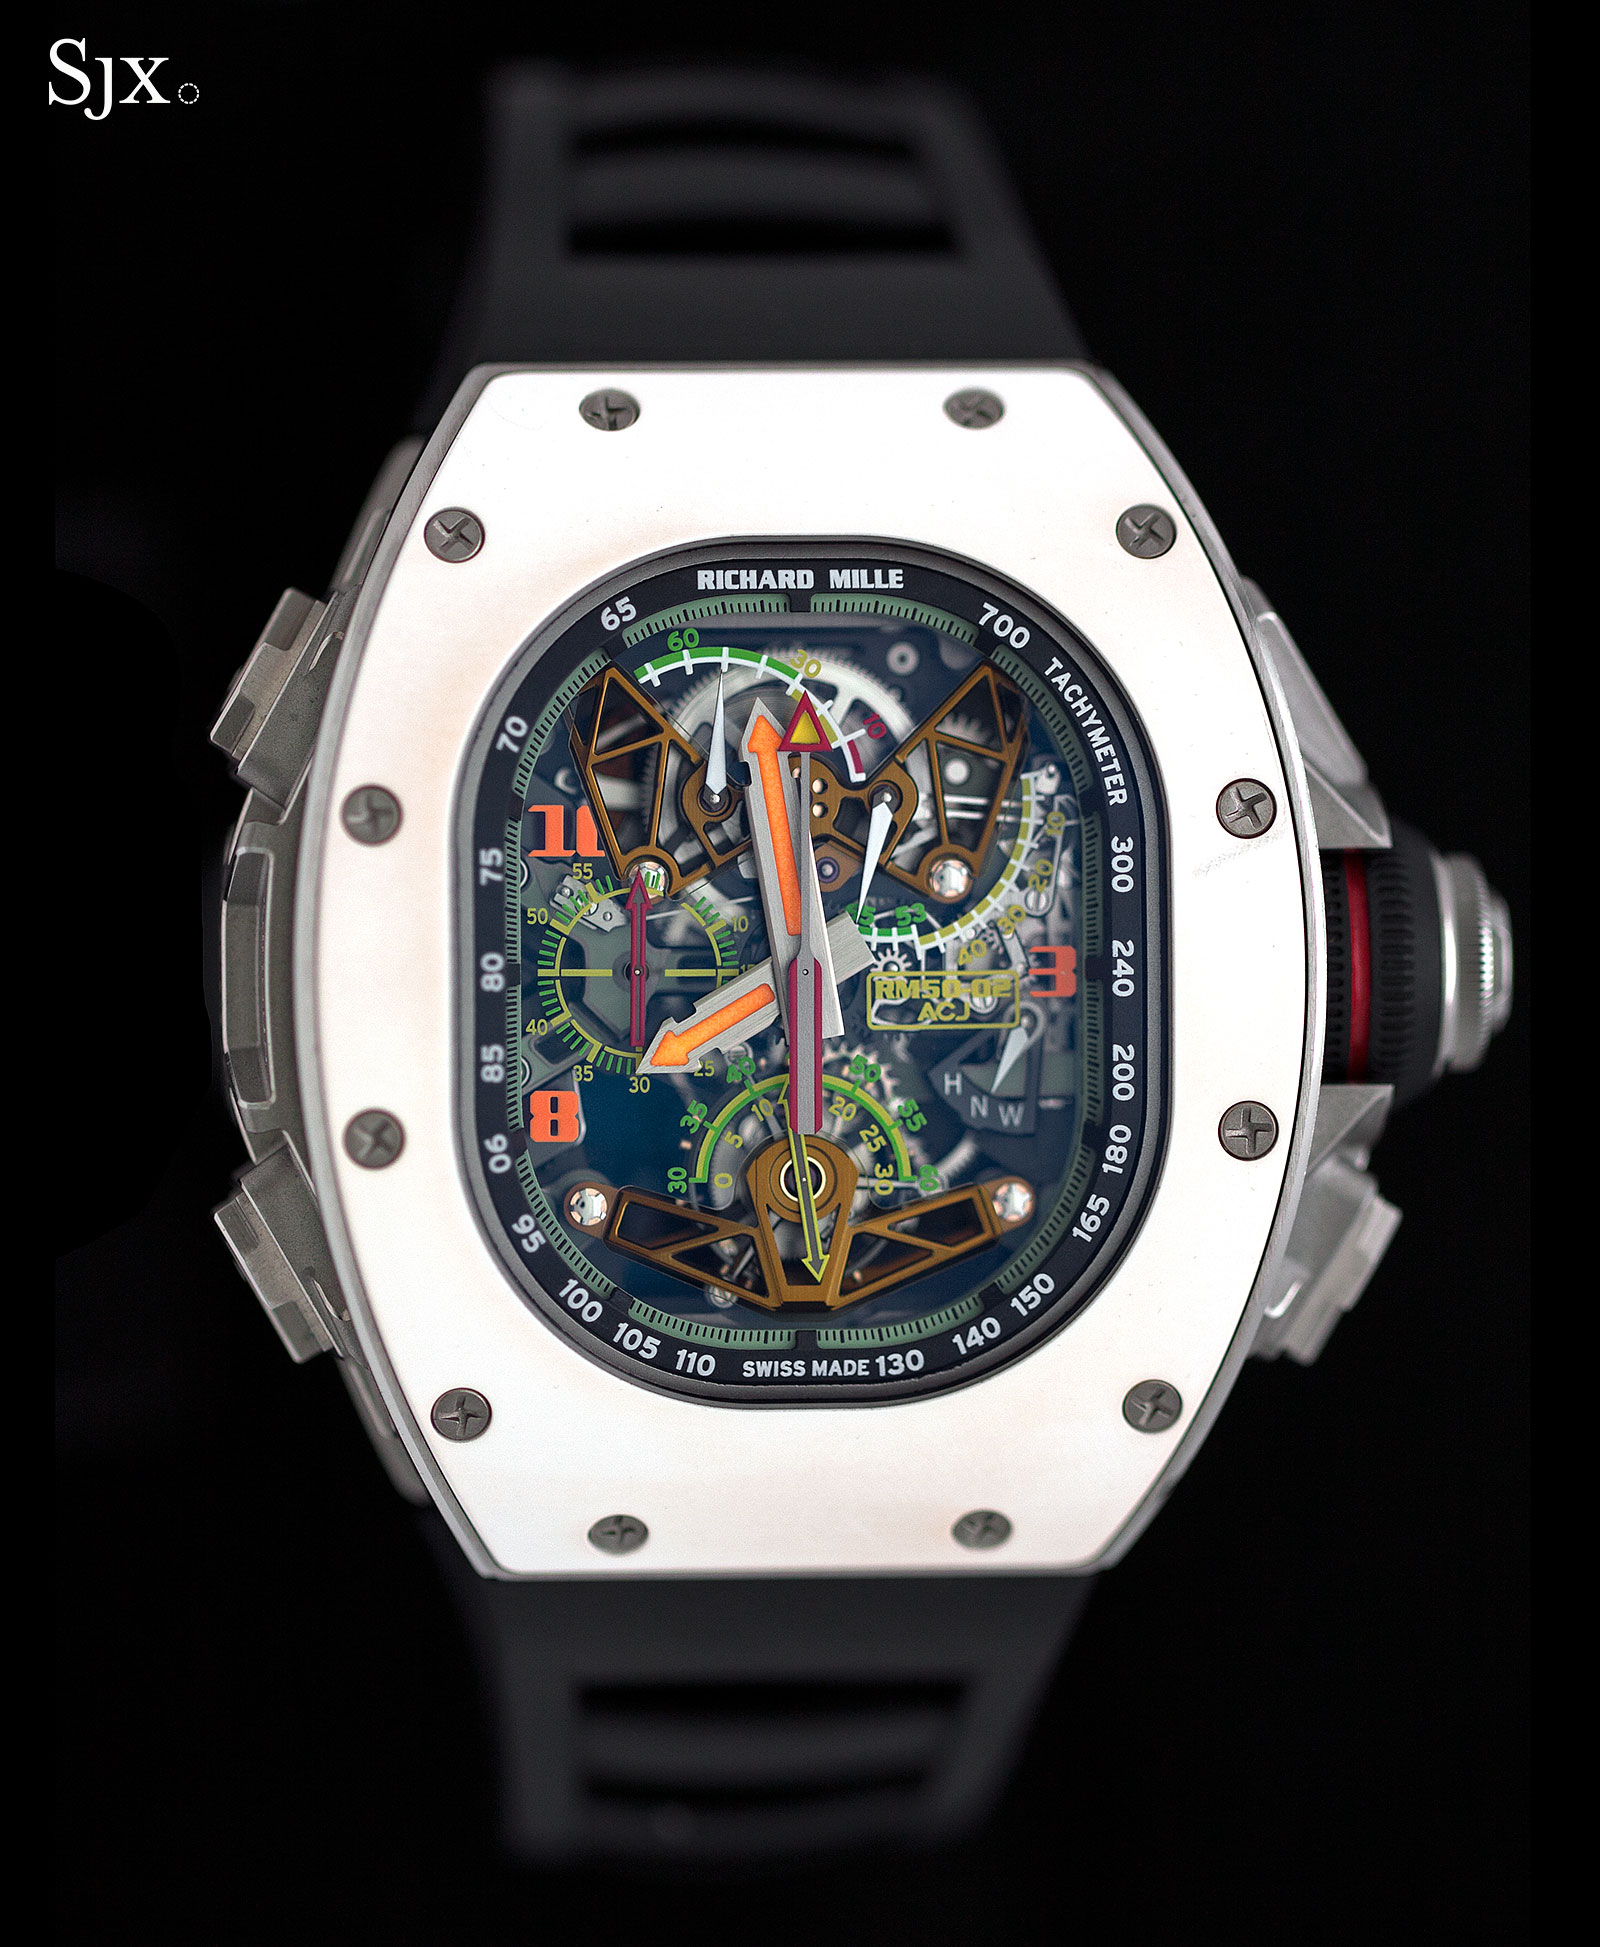 Richard Mille RM 50-02 ACJ Tourbillon Split Seconds Chronograph 9